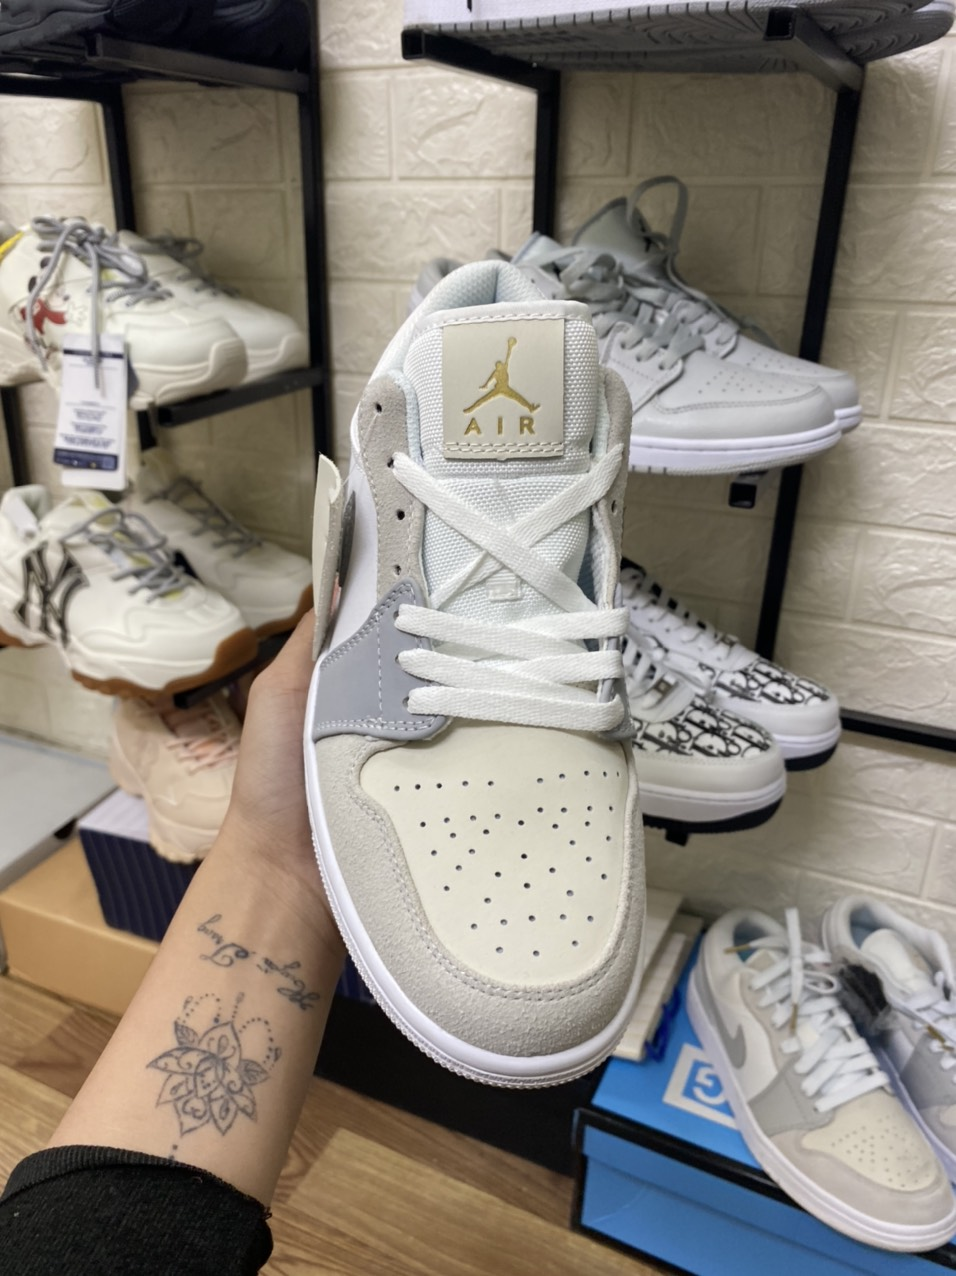 Jordan 1 Low Paris Rep 1:1, Jordan 1 Low Paris  SF, Jordan 1 Low Paris  Super fake, Jordan 1 Low Paris  f1, Jordan 1 Low Paris  Replica, Jordan 1 Low Paris Rep